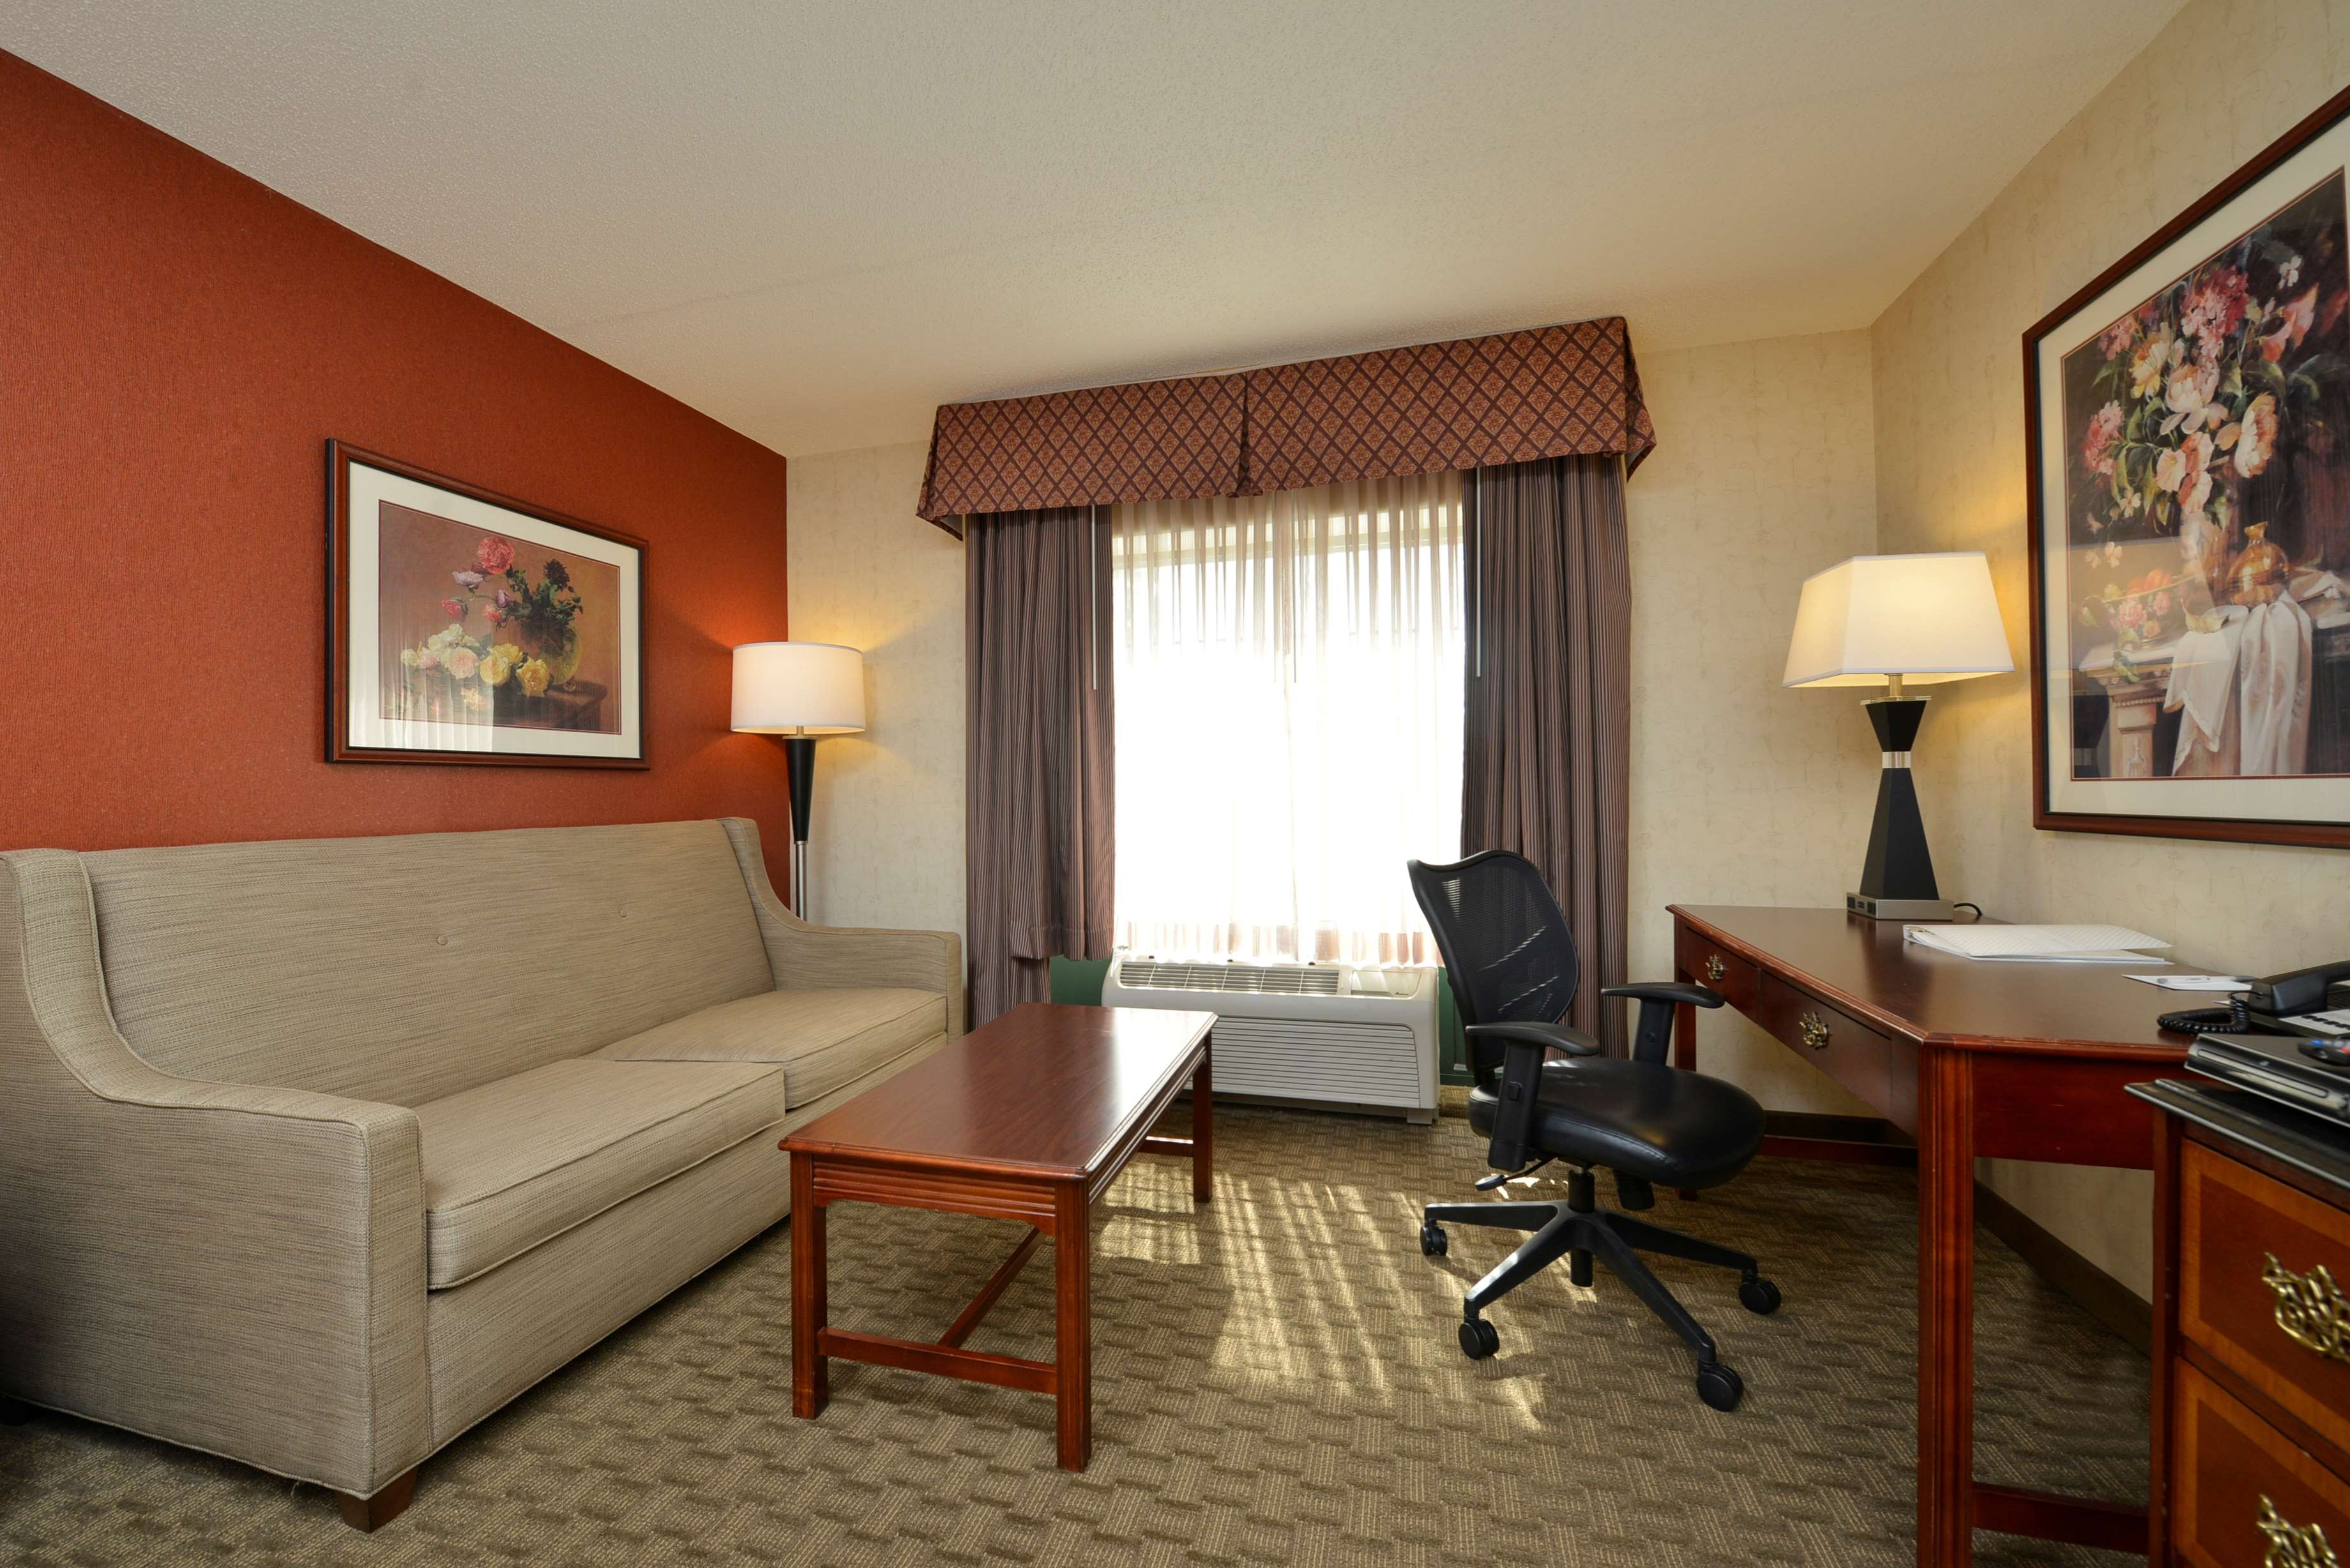 Hampton Inn East Aurora image 23